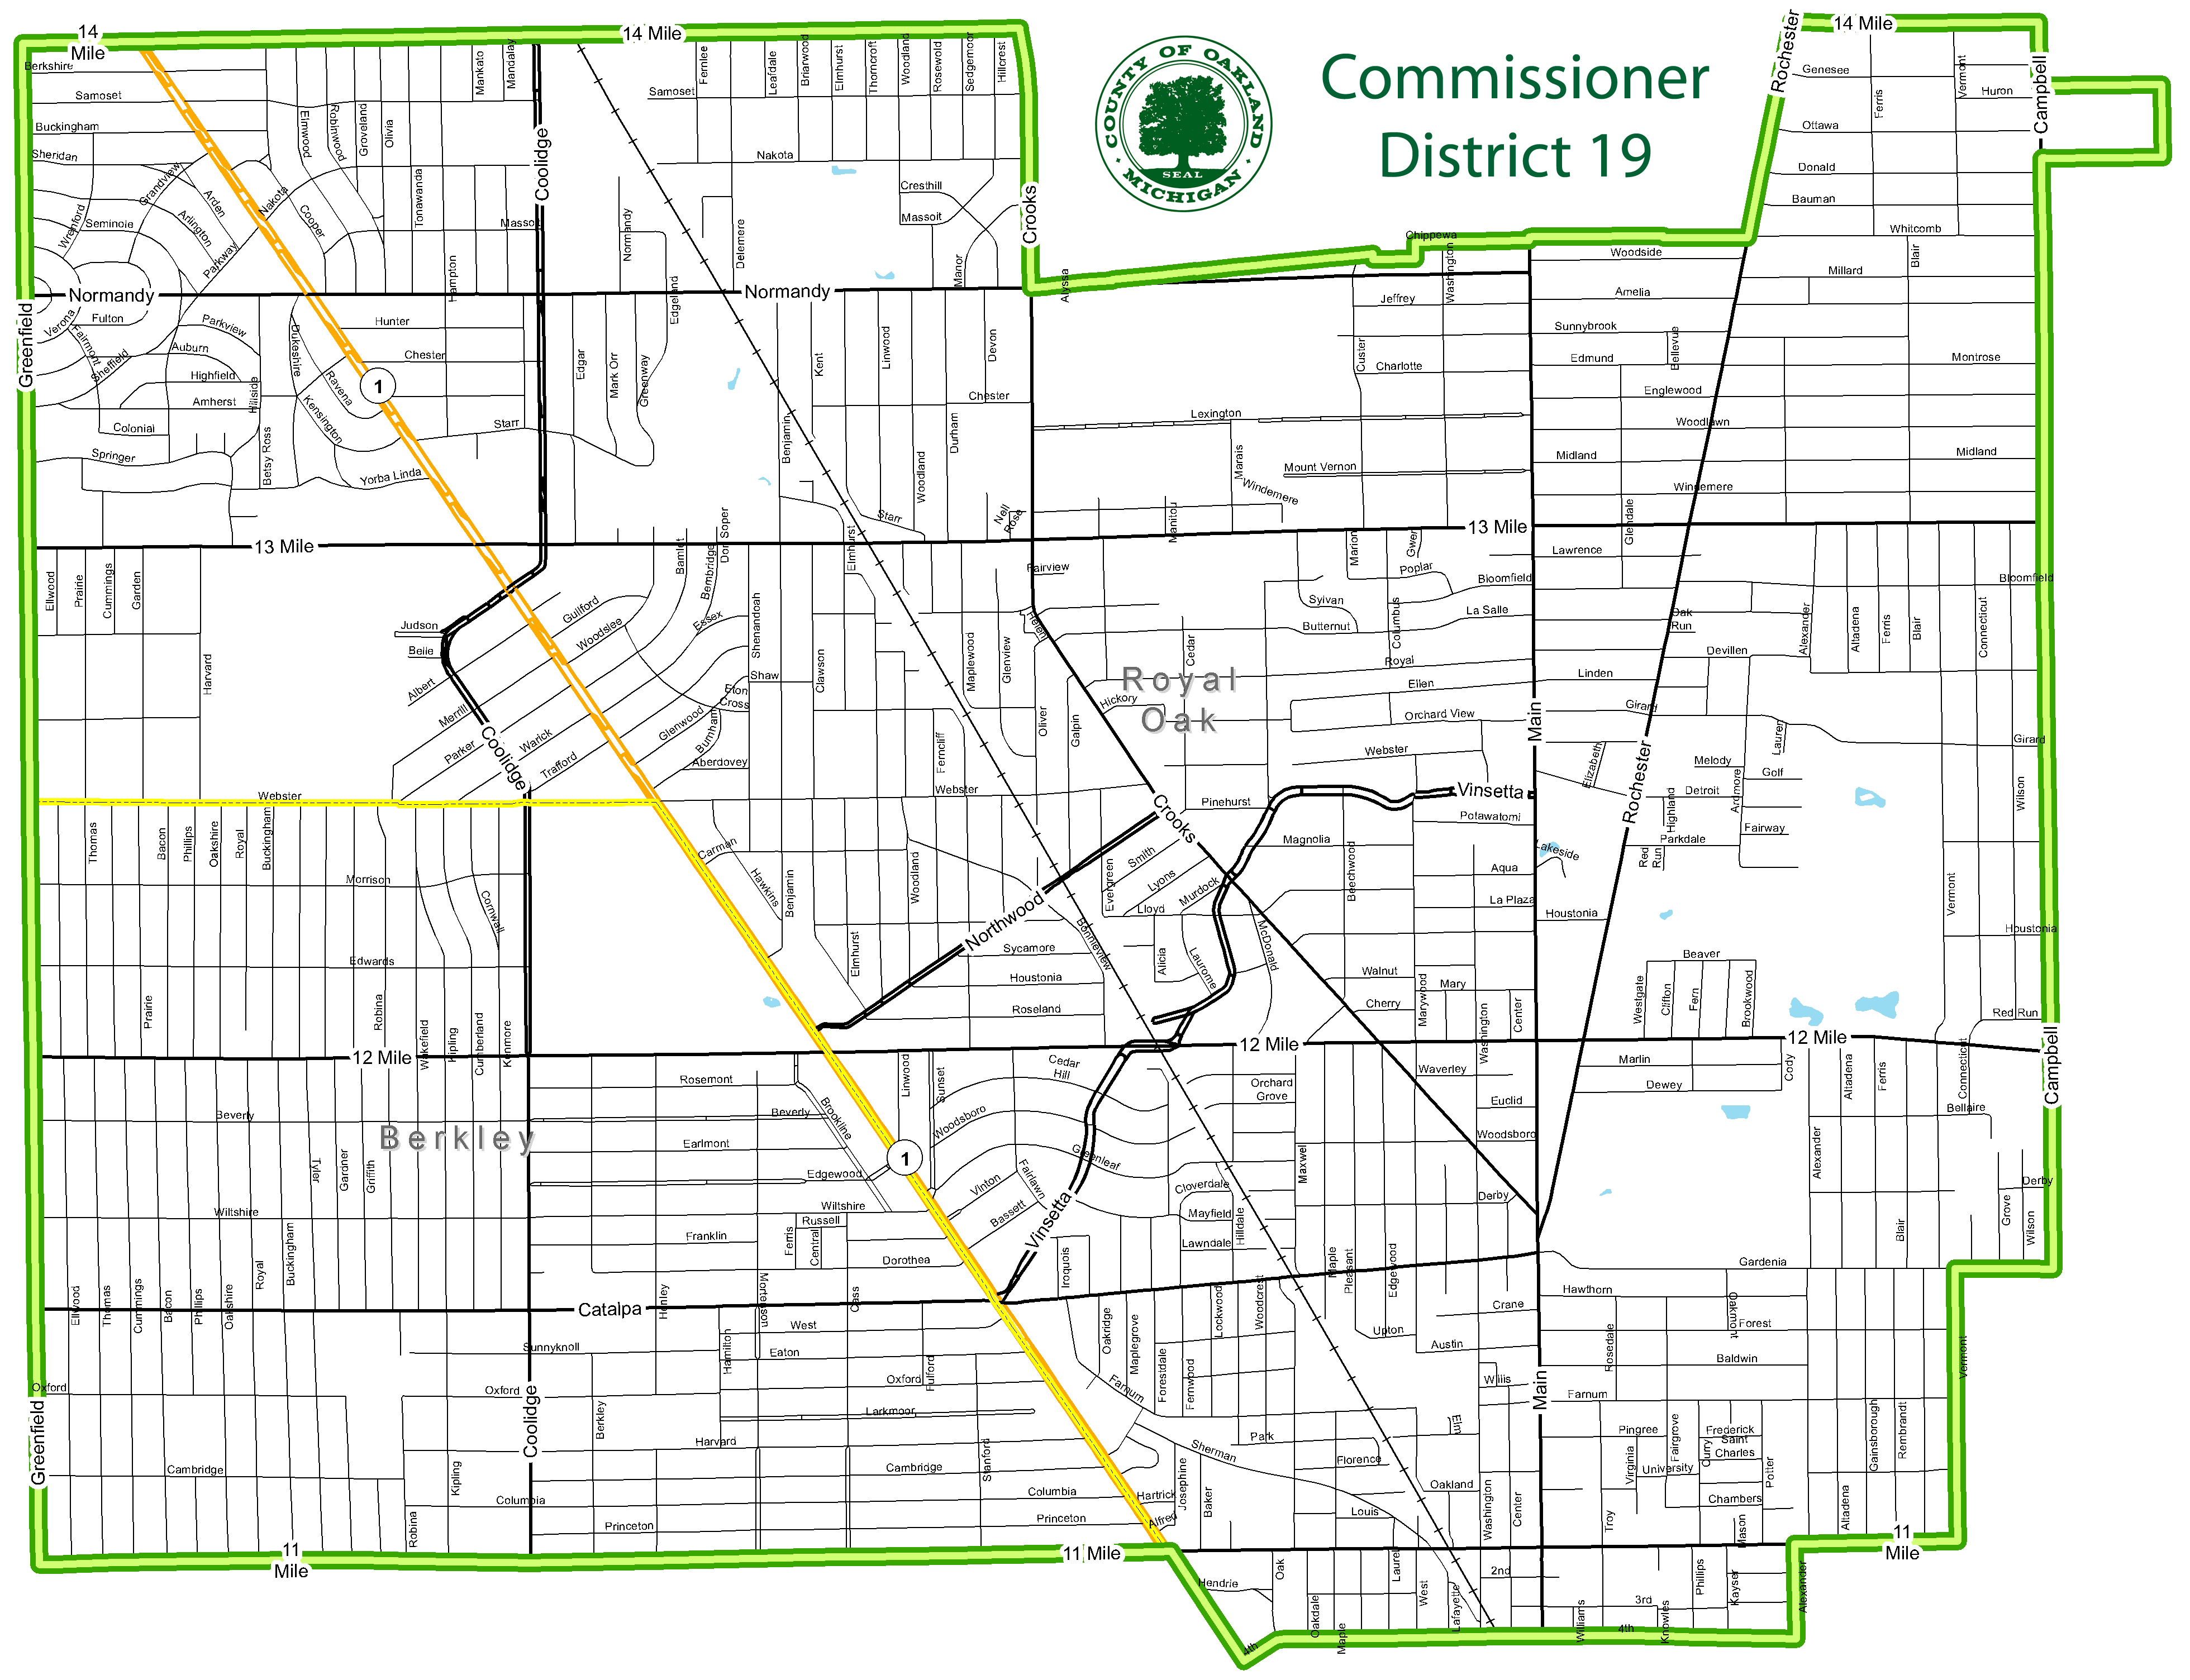 Street map of Commissioner District 19